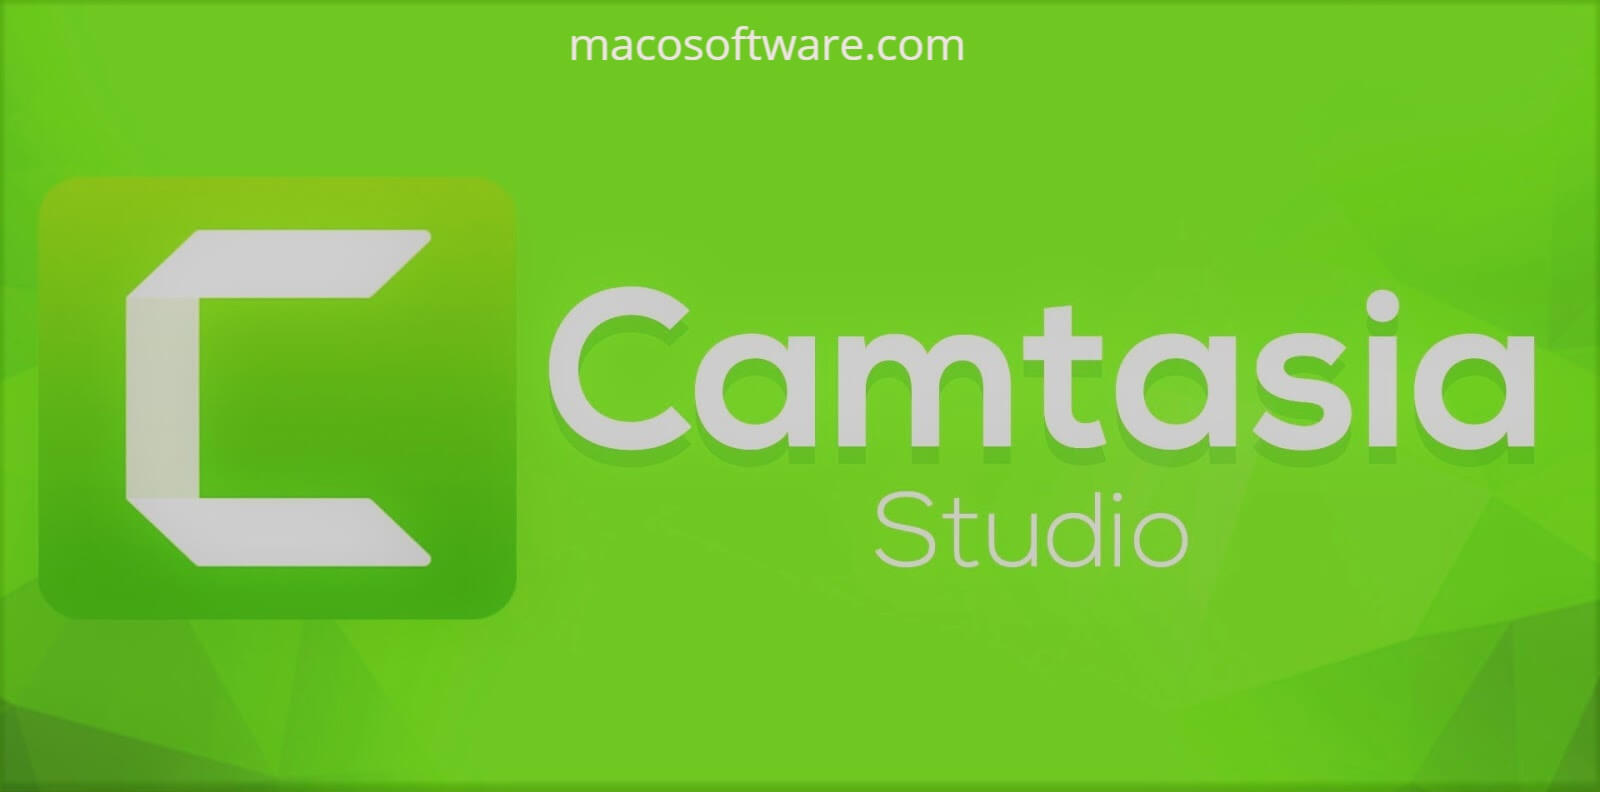 Camtasia Studio 2020 Serial Key + Screen Recorder & Video Editor With Crack